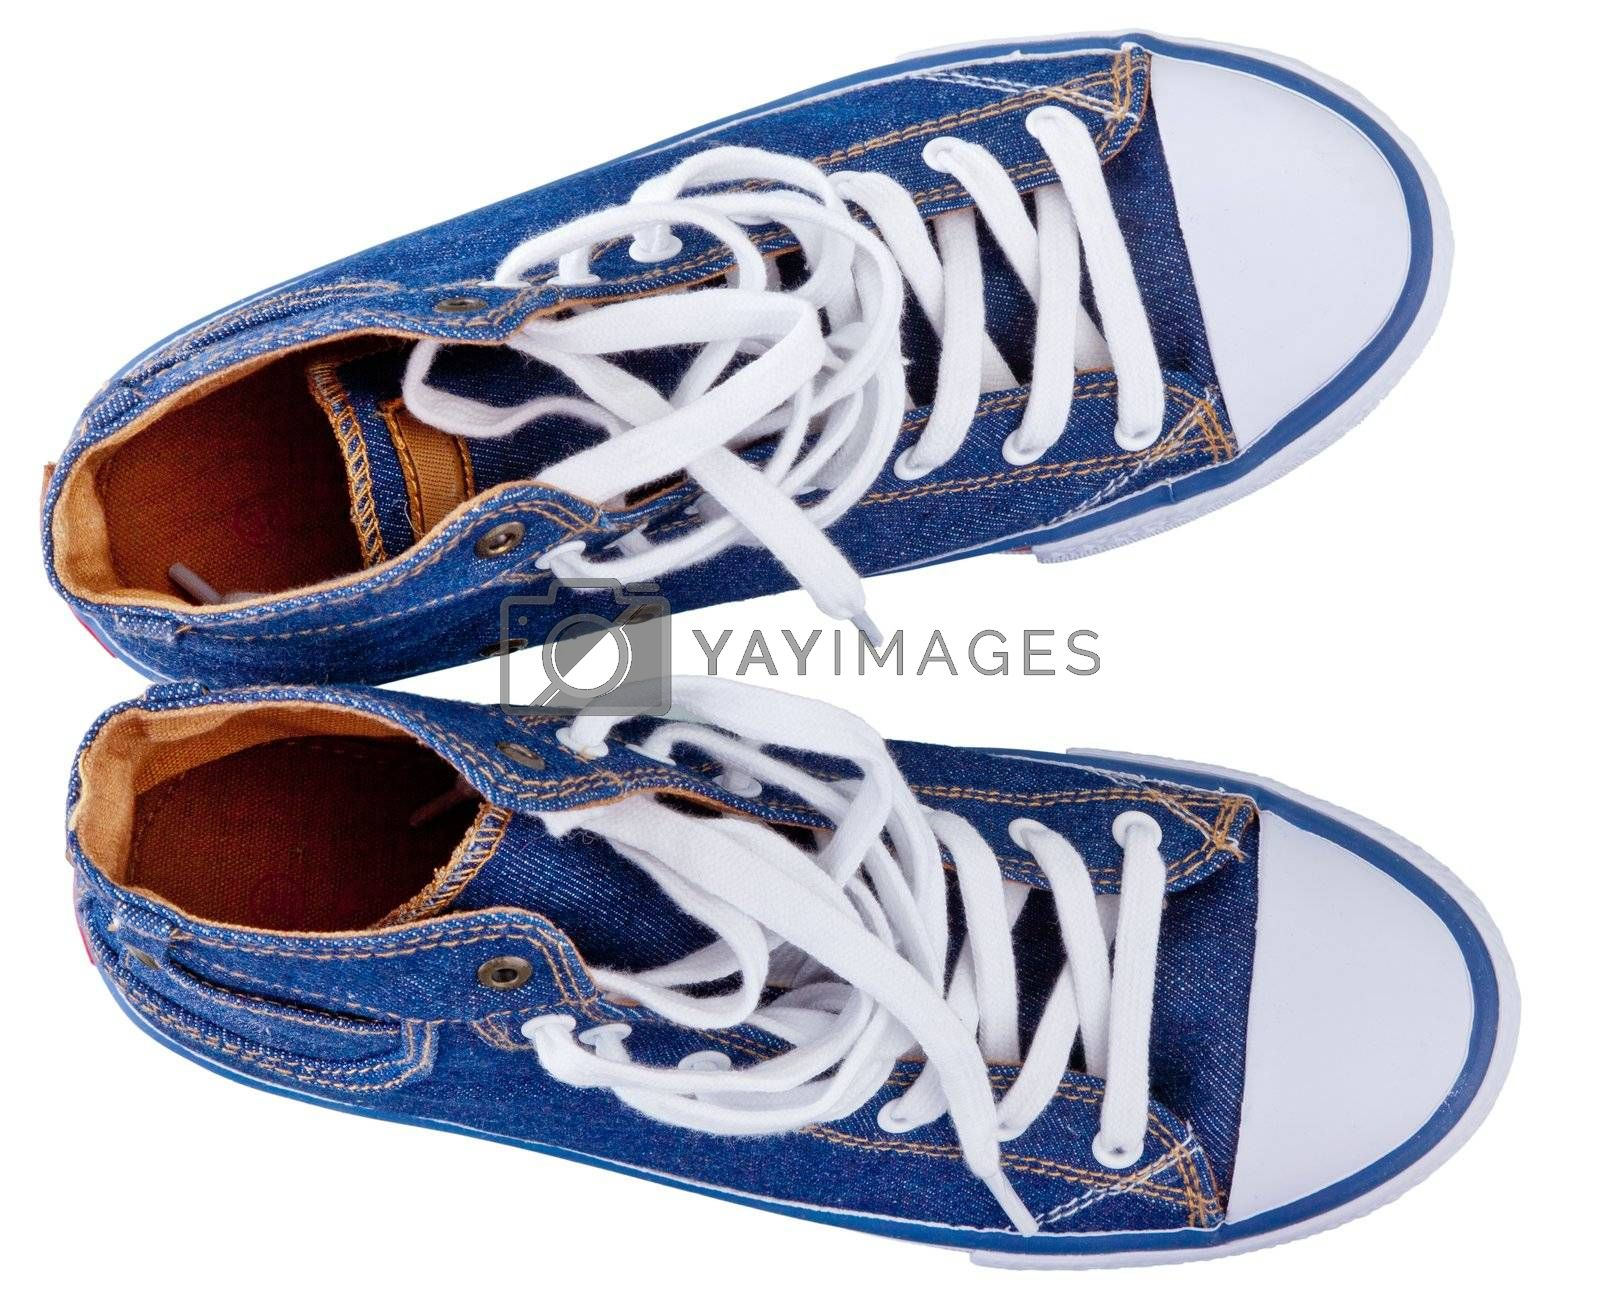 pair of simple gumshoes ( sneakers ) of denim canvas  on a white background